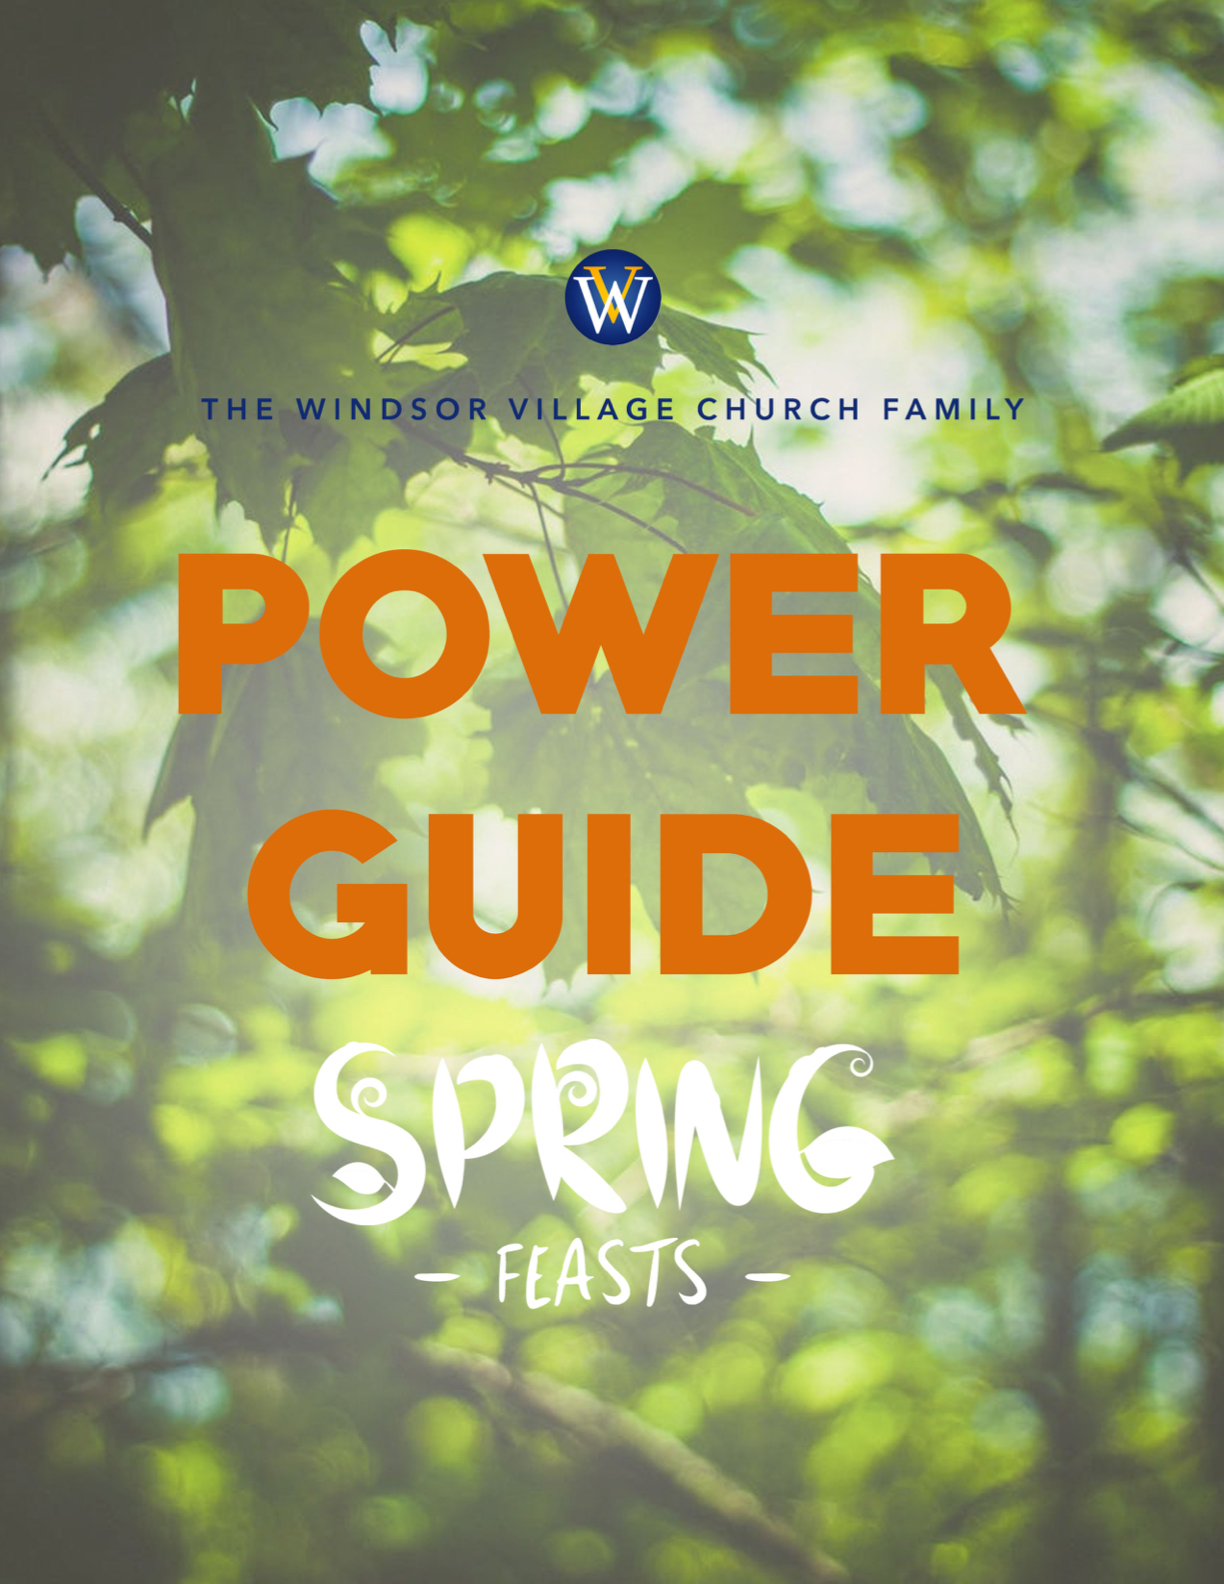 April 2019 Spring Feasts Power Guide